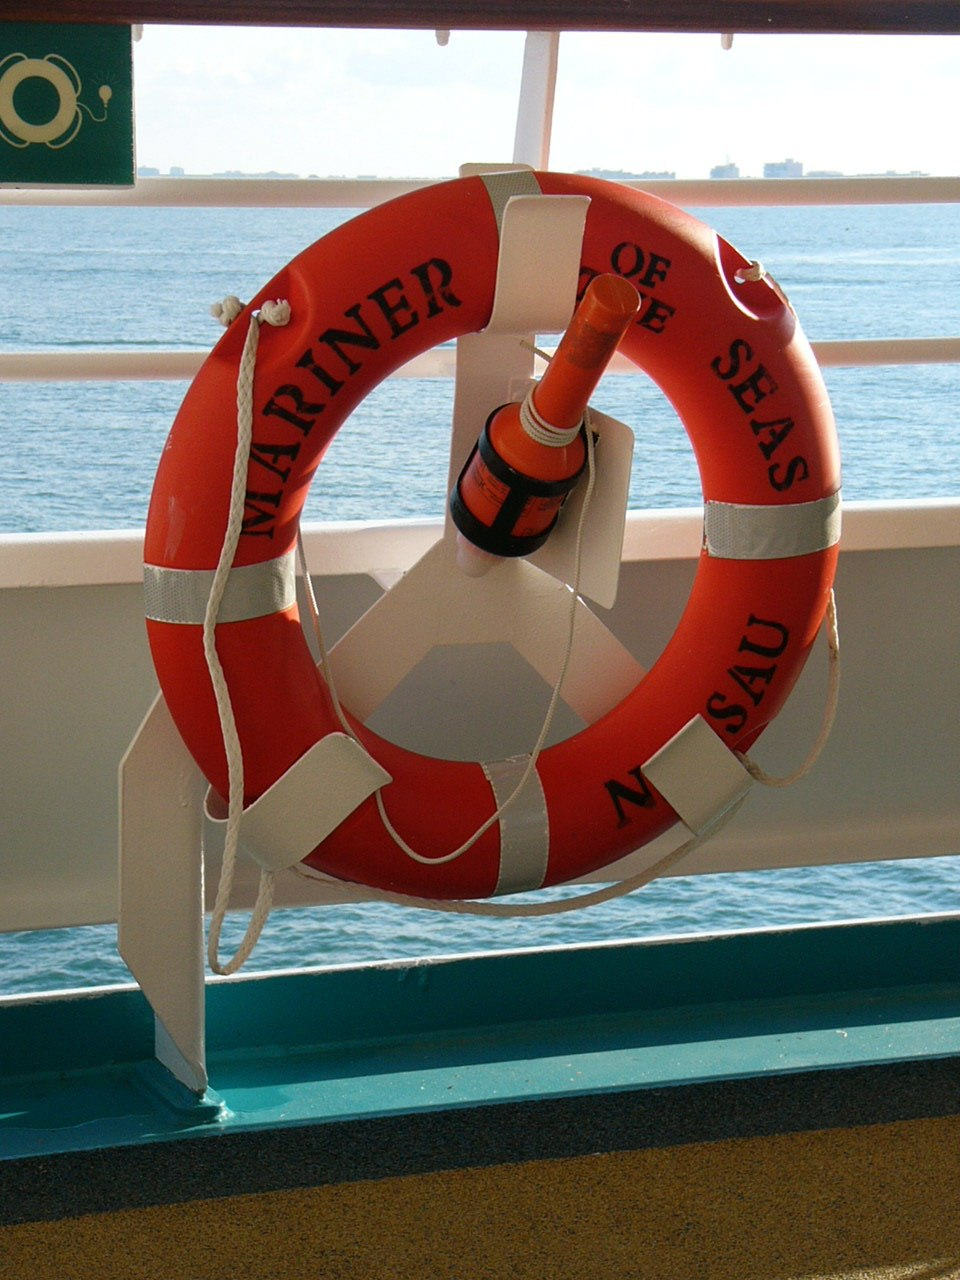 Ring buoy with light